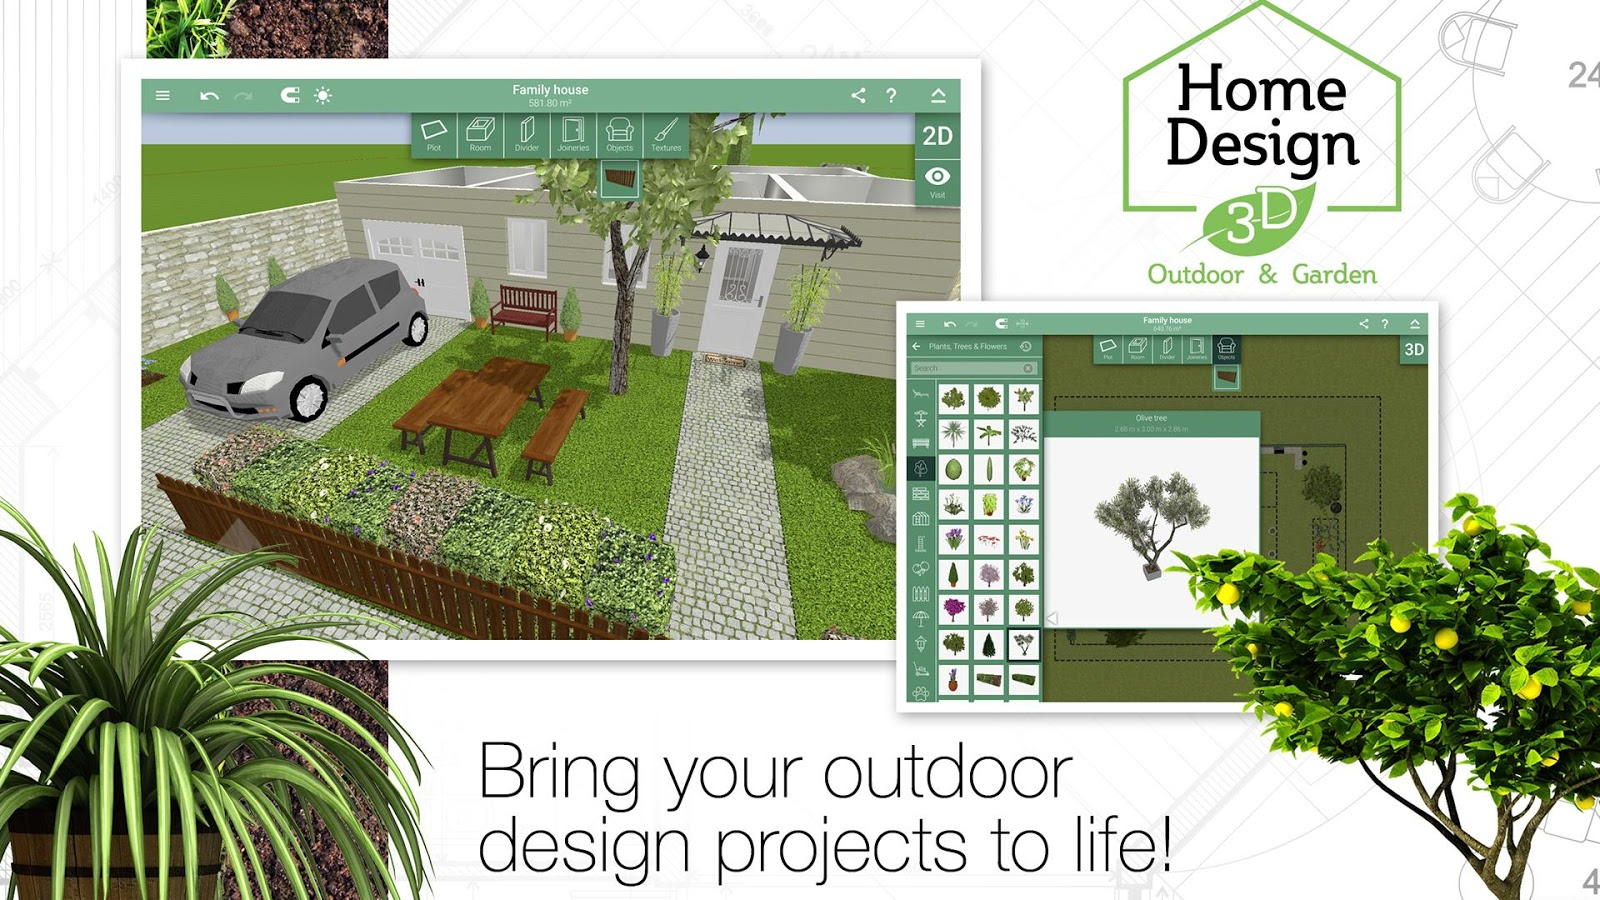 Home design 3d outdoor garden android apps on google play for Garden design application